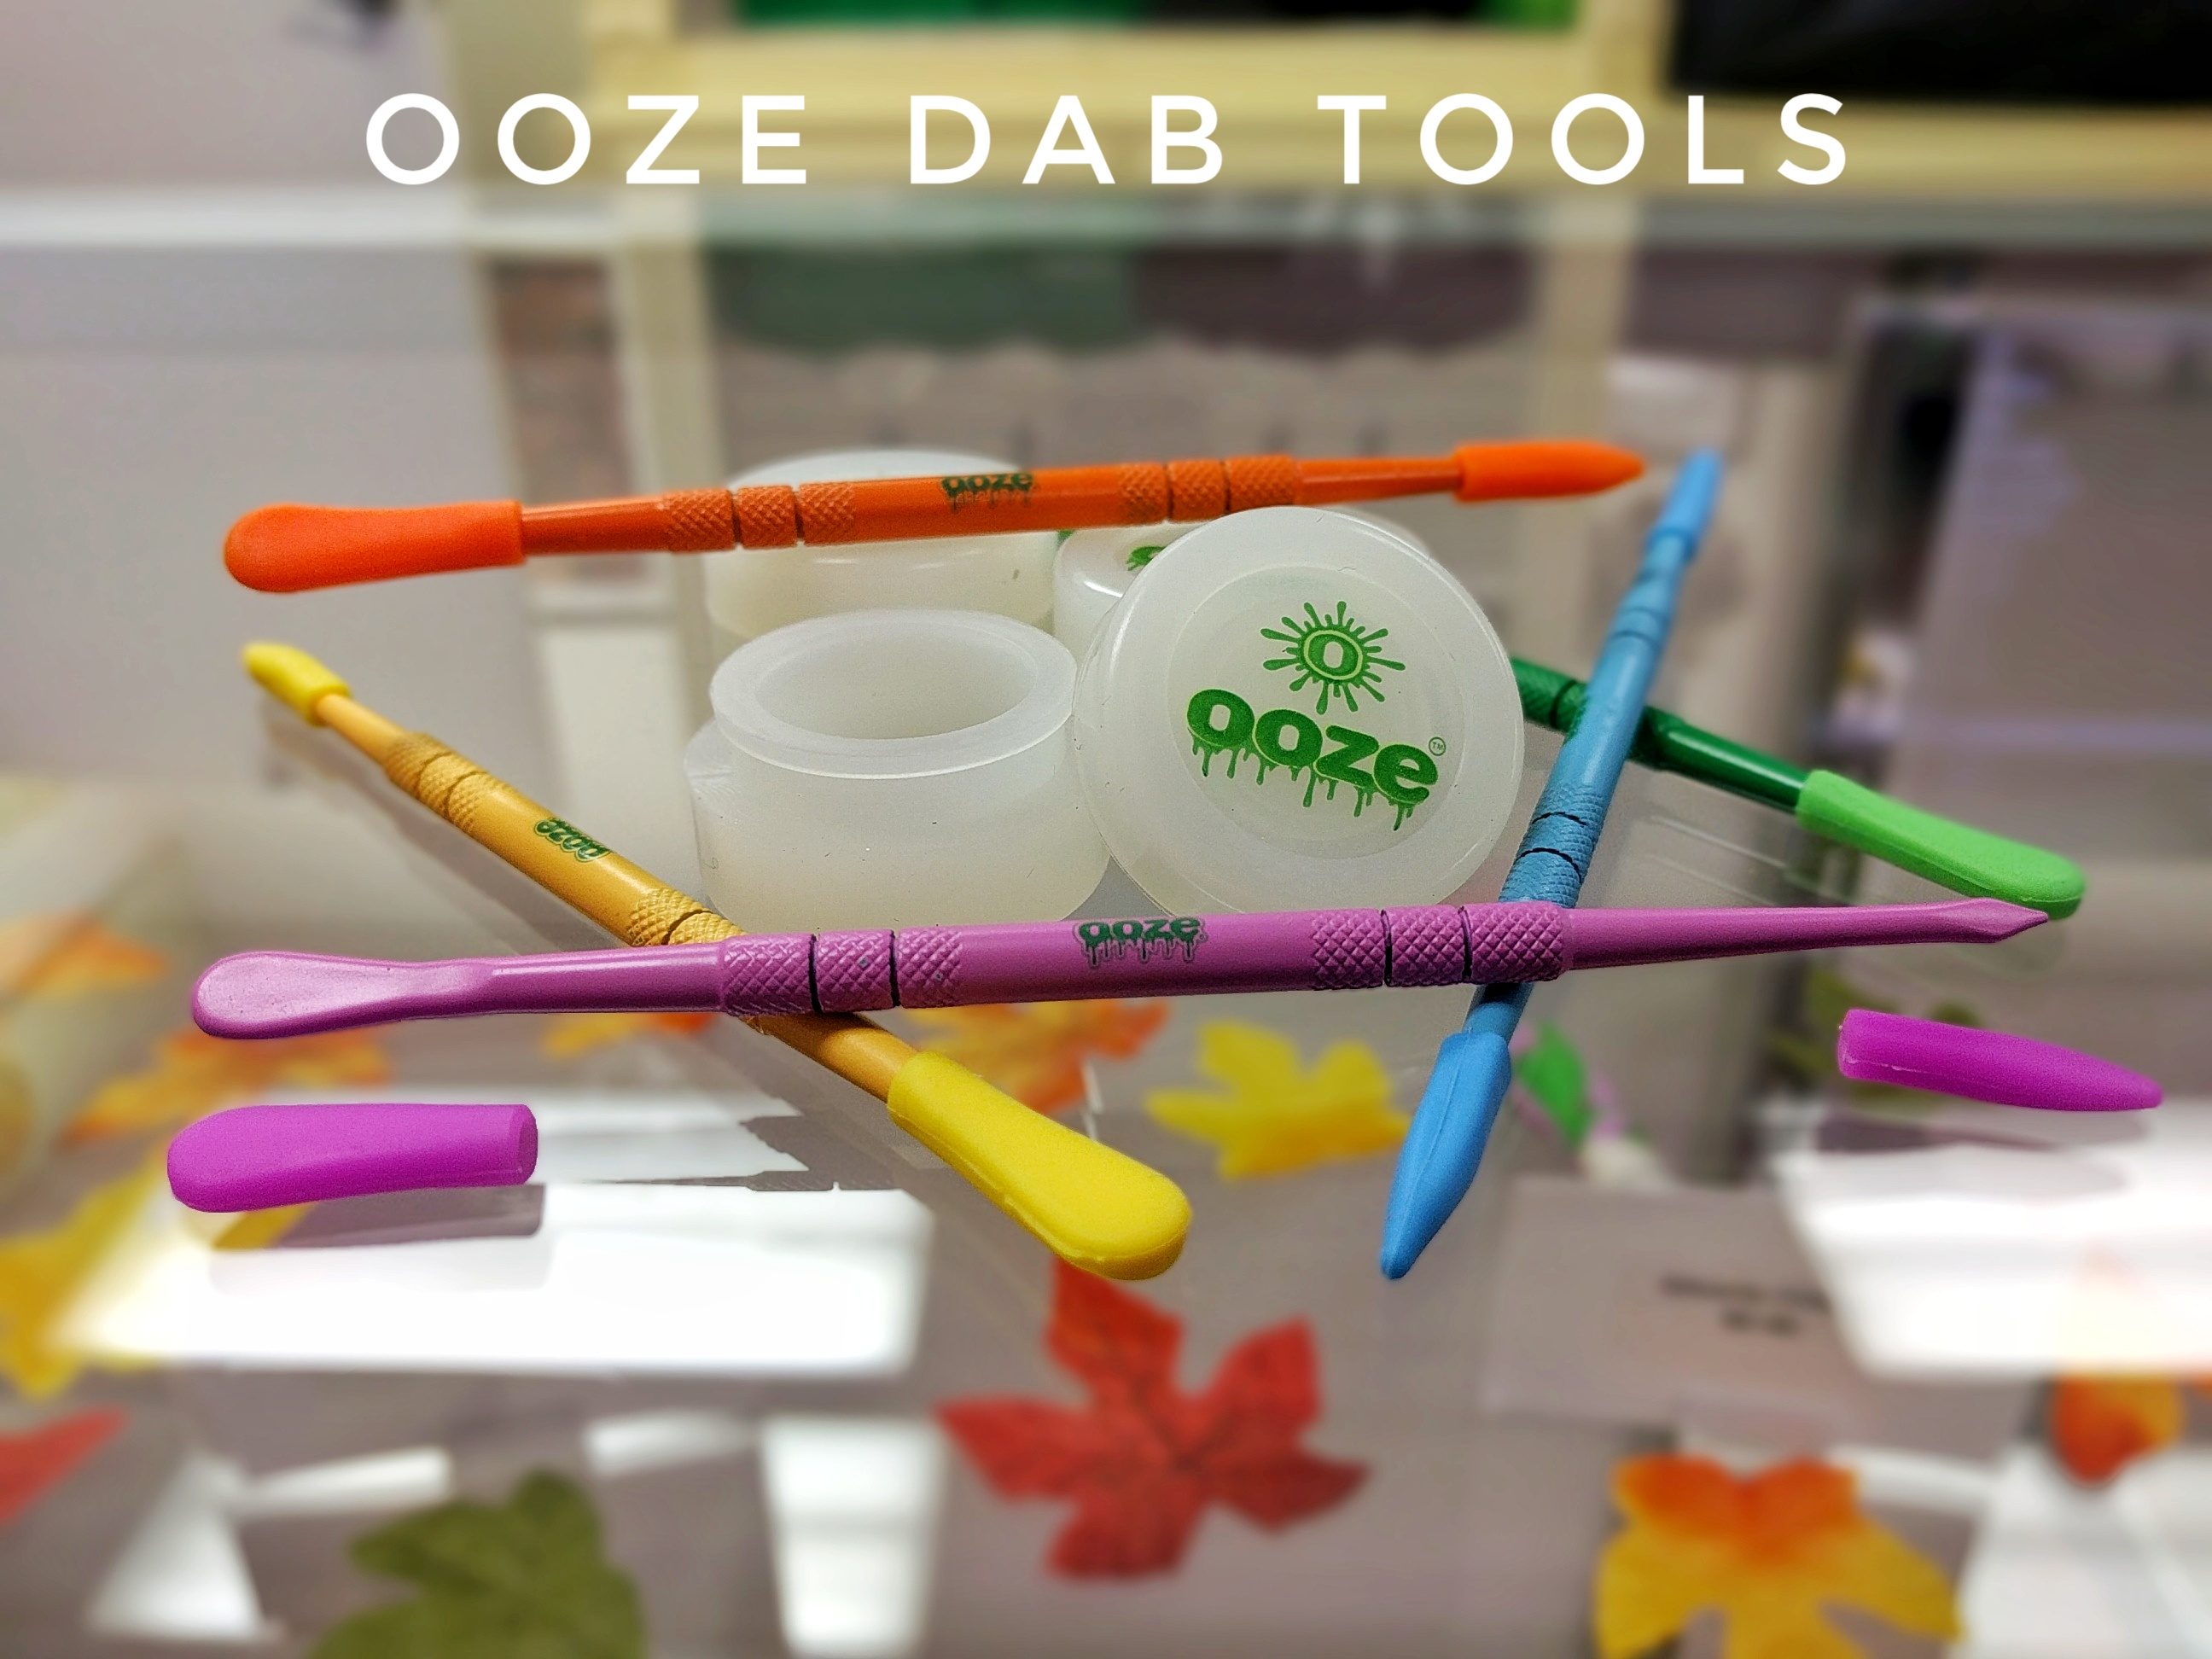 ooze dab tools text